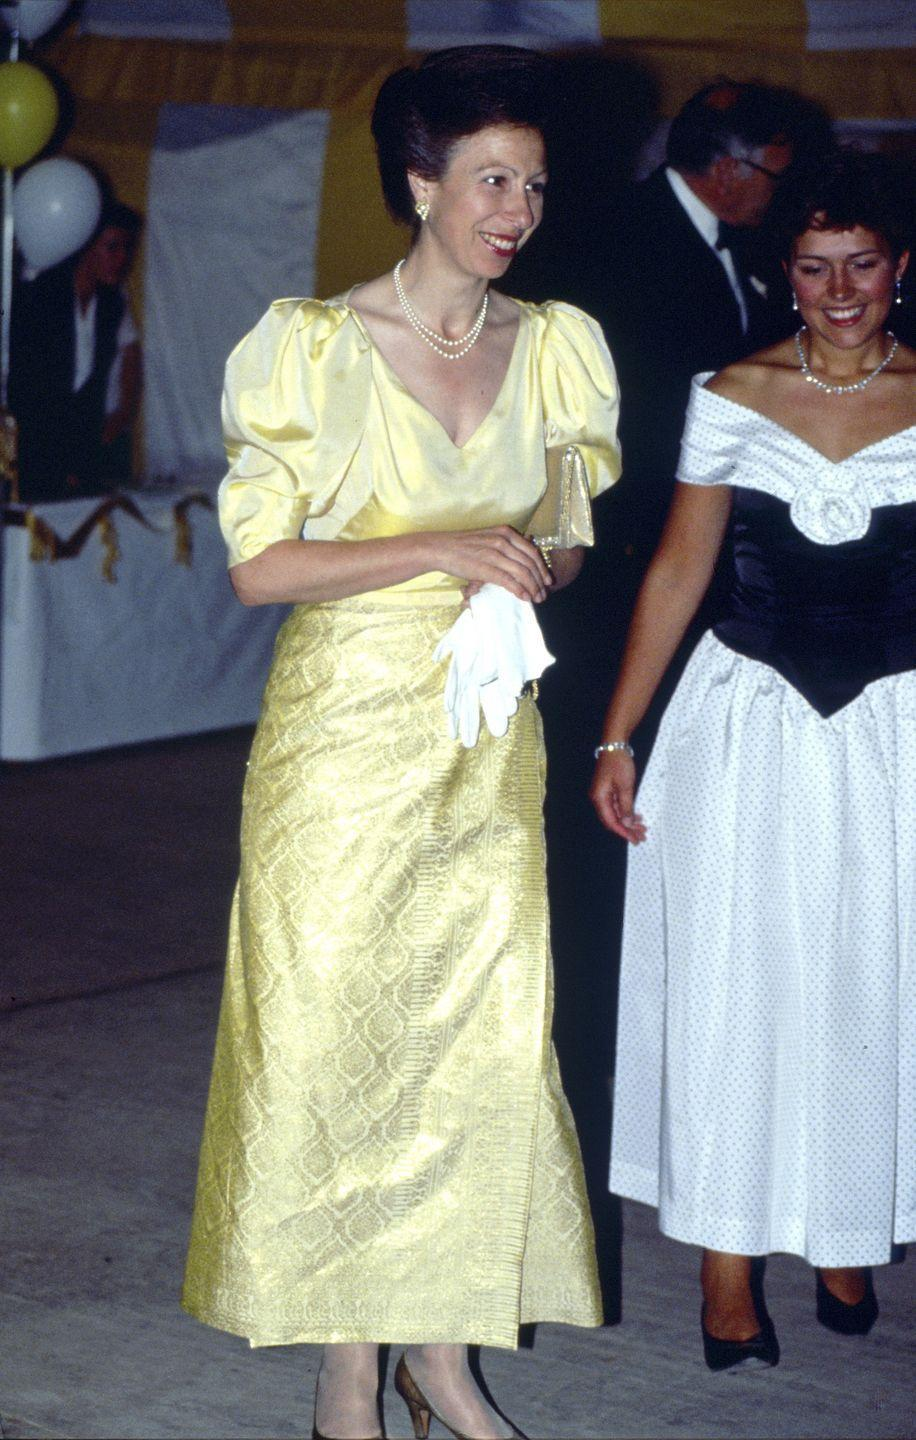 <p>Princess Anne wore a silk evening gown in 1992 to the Young Farmers Golden Jubilee Ball, which reminds us of Belle's gown for its pale yellow hue and puffy sleeves. </p>